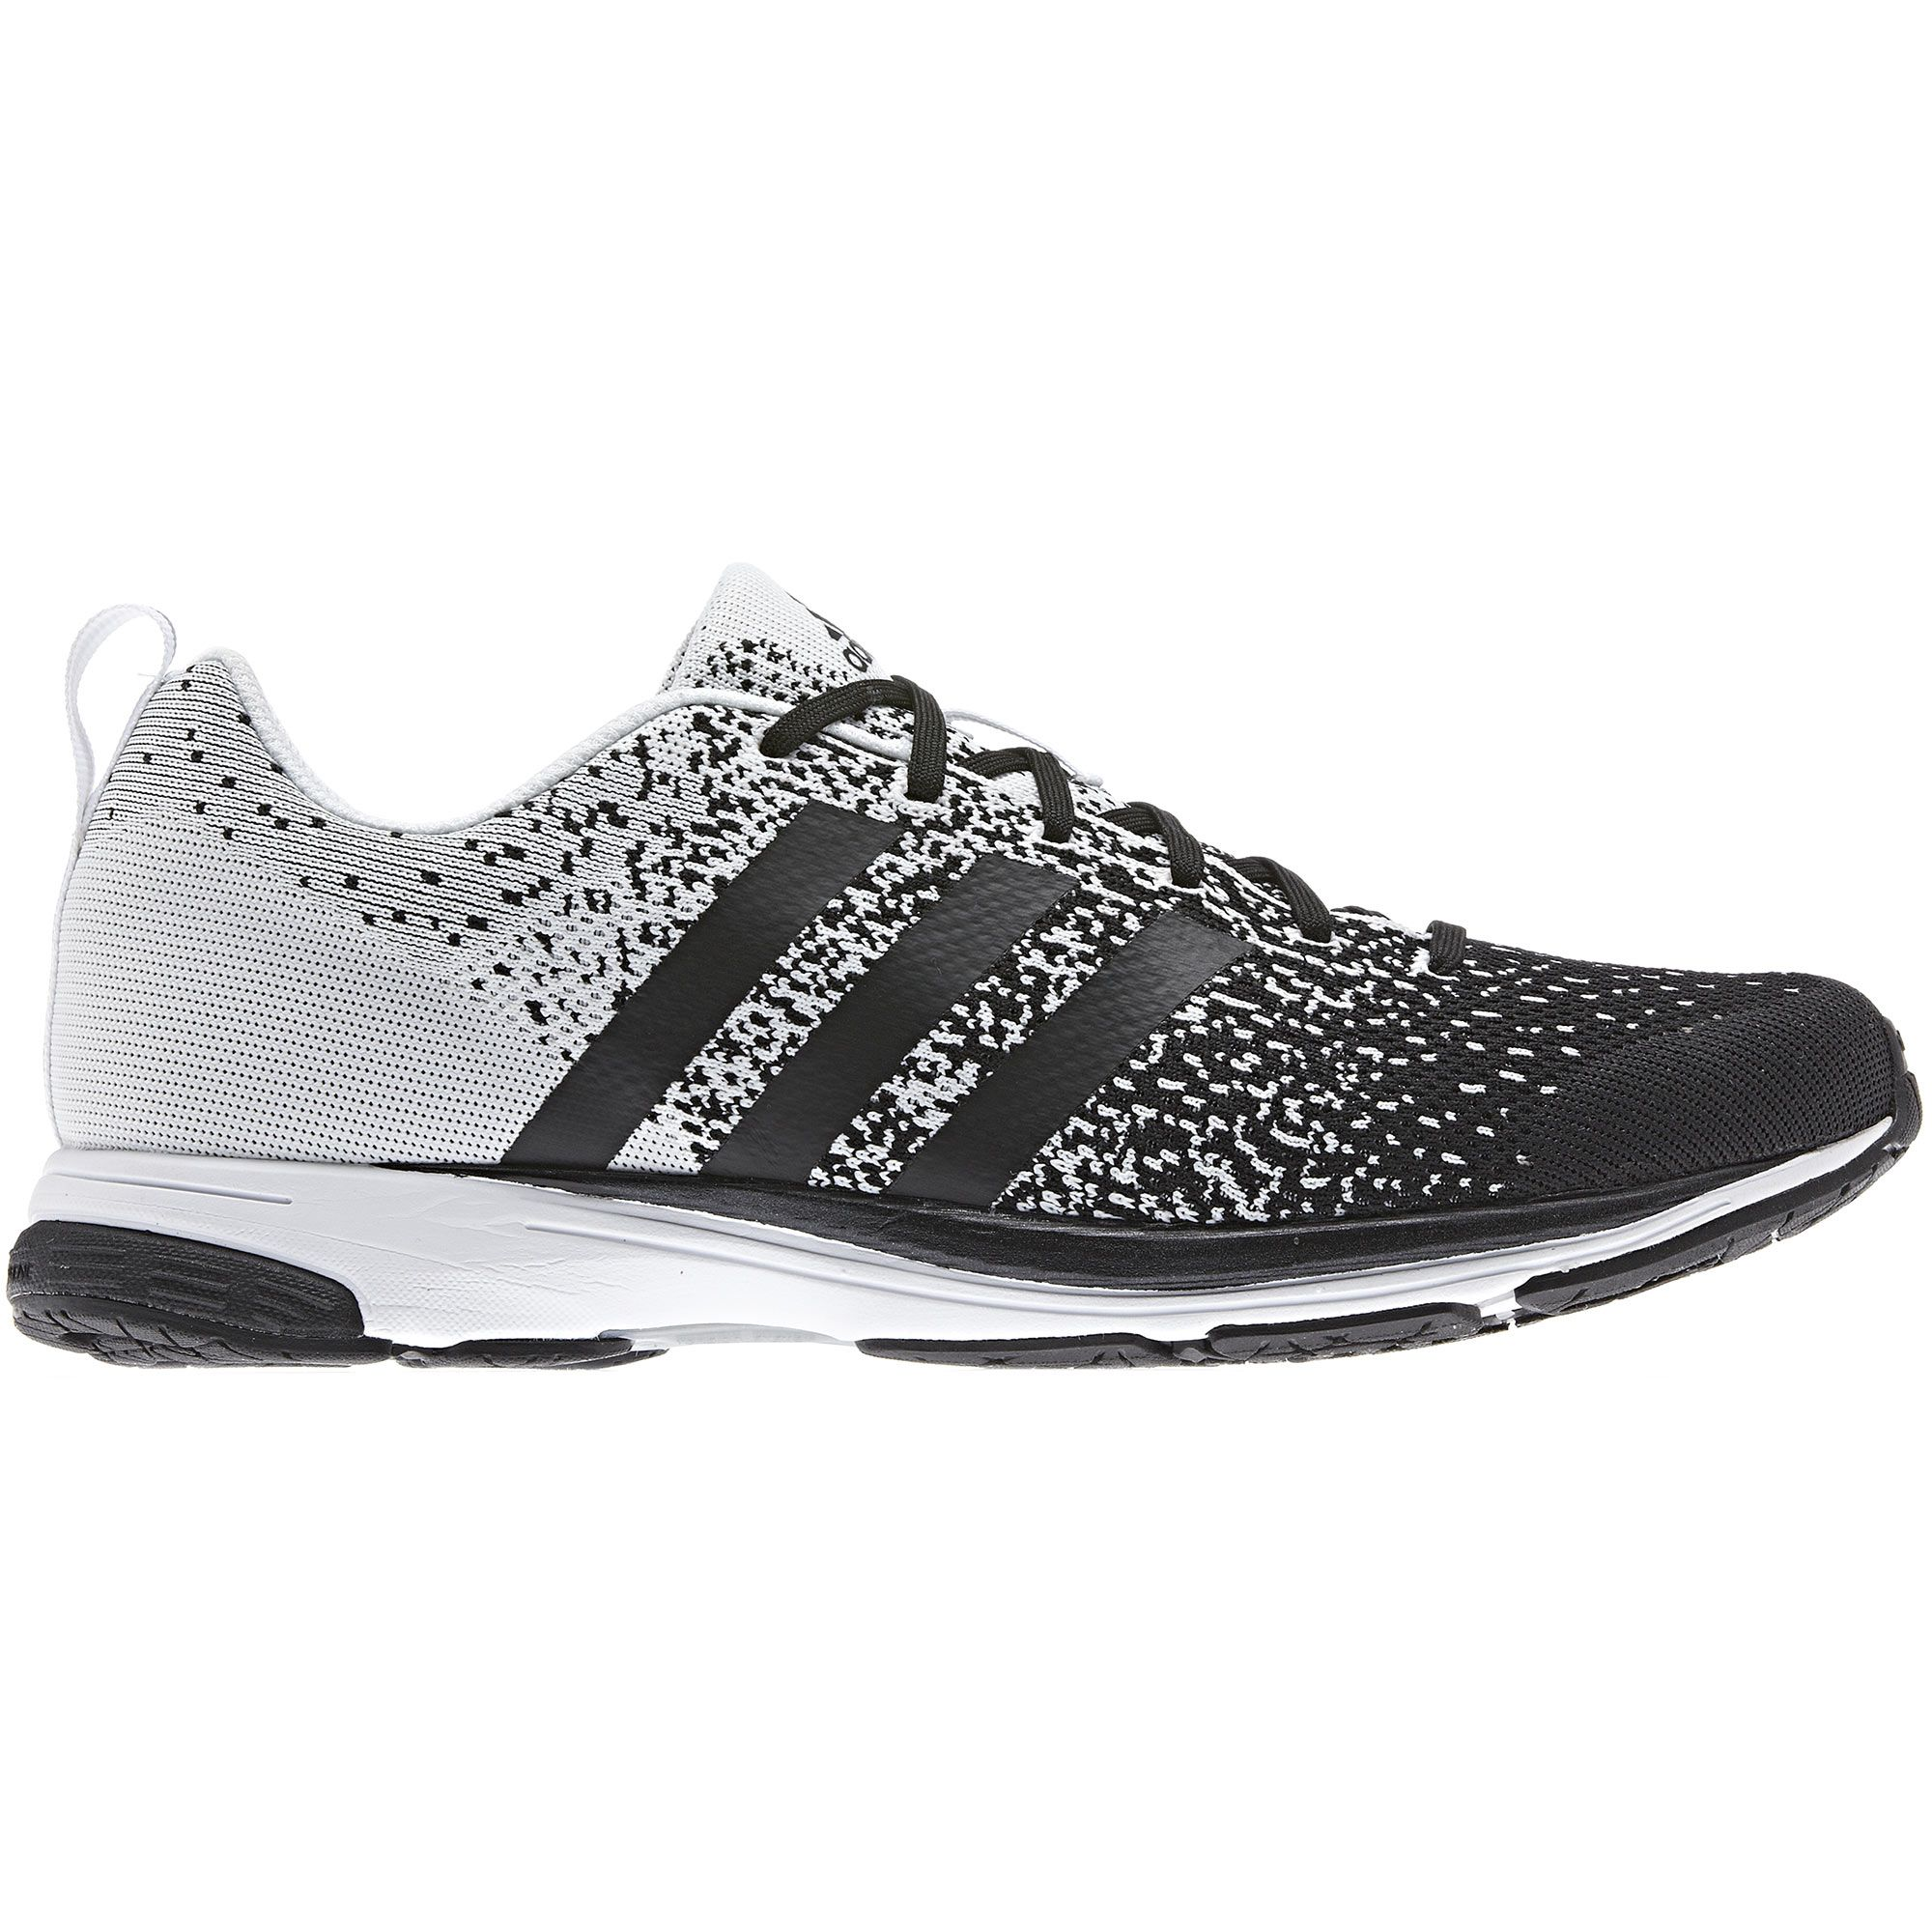 reputable site 77493 7948c undefined Adidas Hommes, Shoes Too Big, Adidas Sneakers, Sport Wear, Casual  Shoes